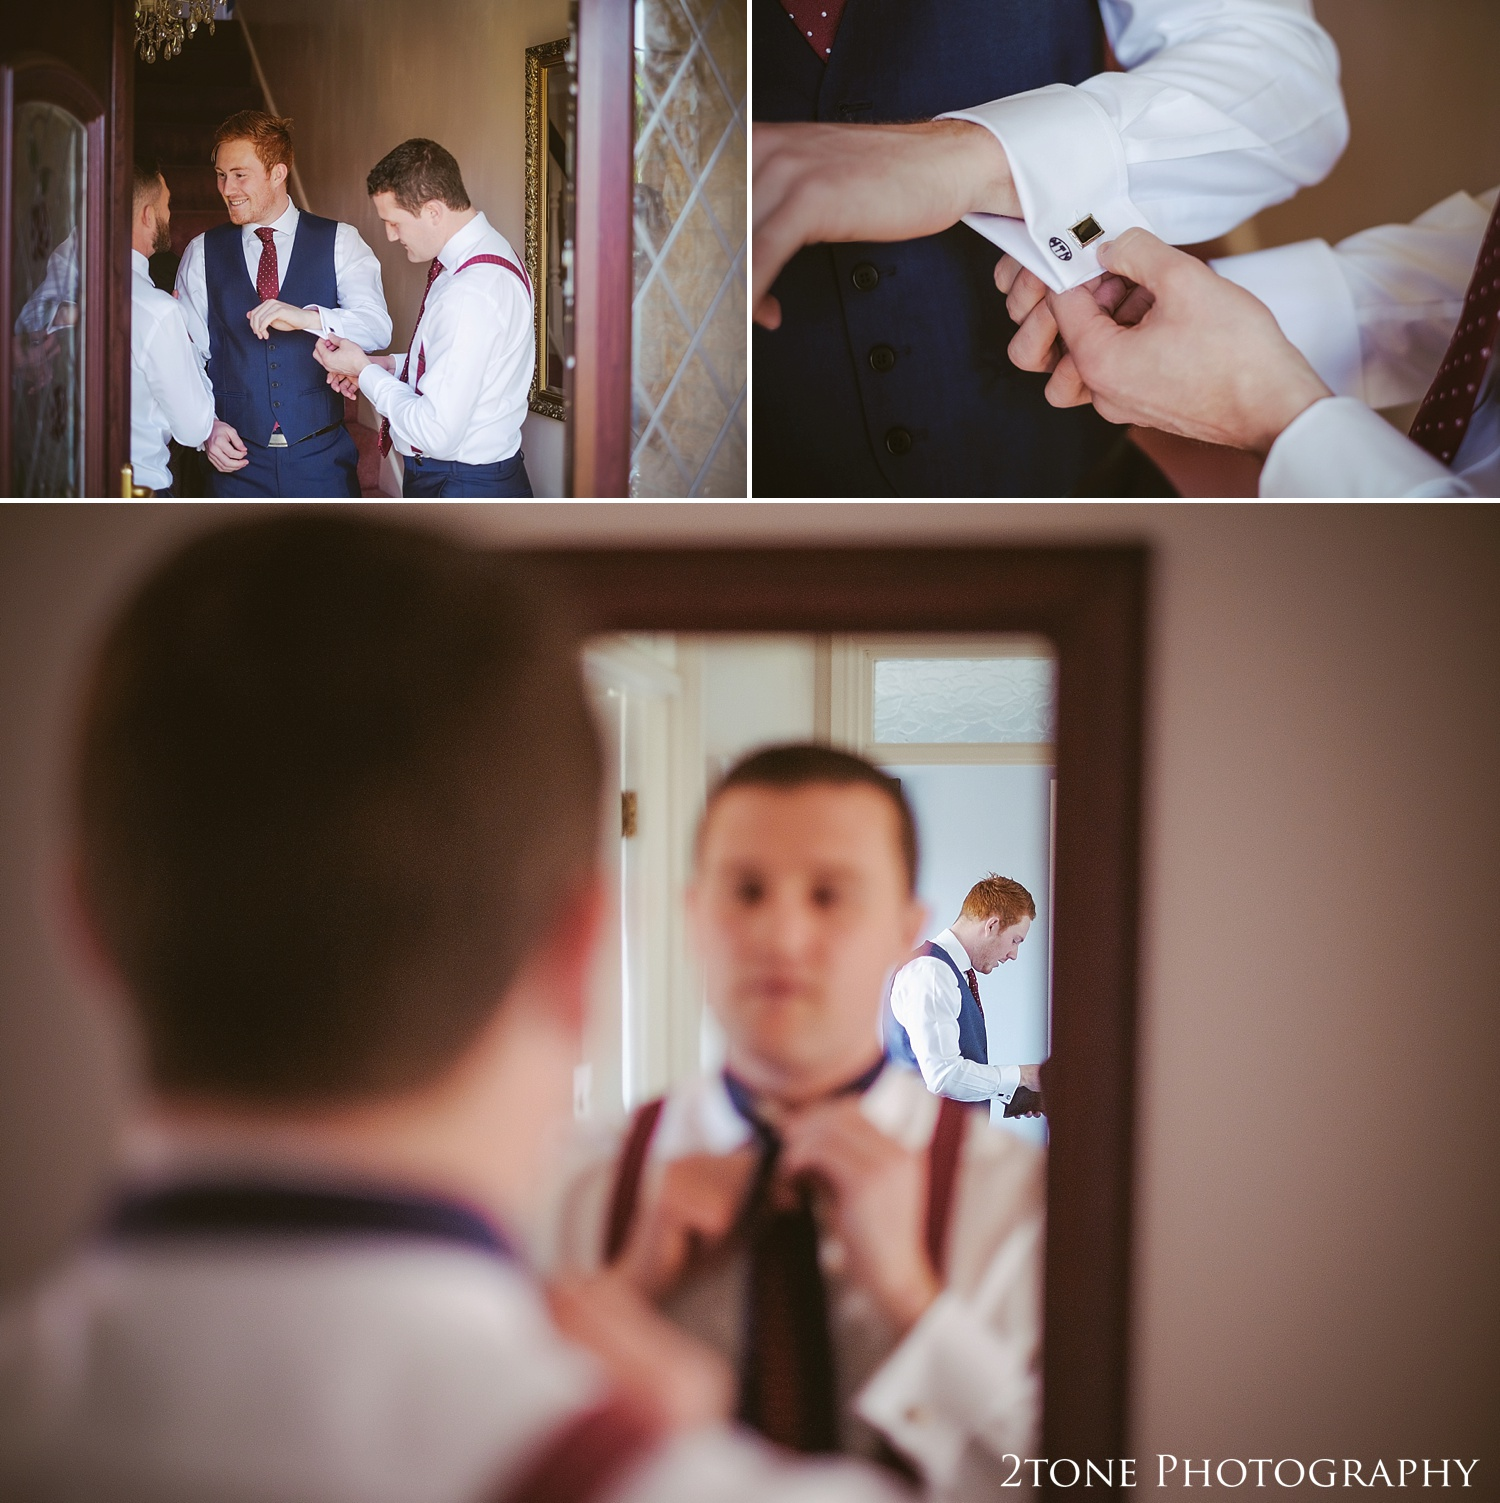 Groom's preparations.  Wedding photography in Somerset by husband and wife team 2tone Photography ww.2tonephotography.co.uk